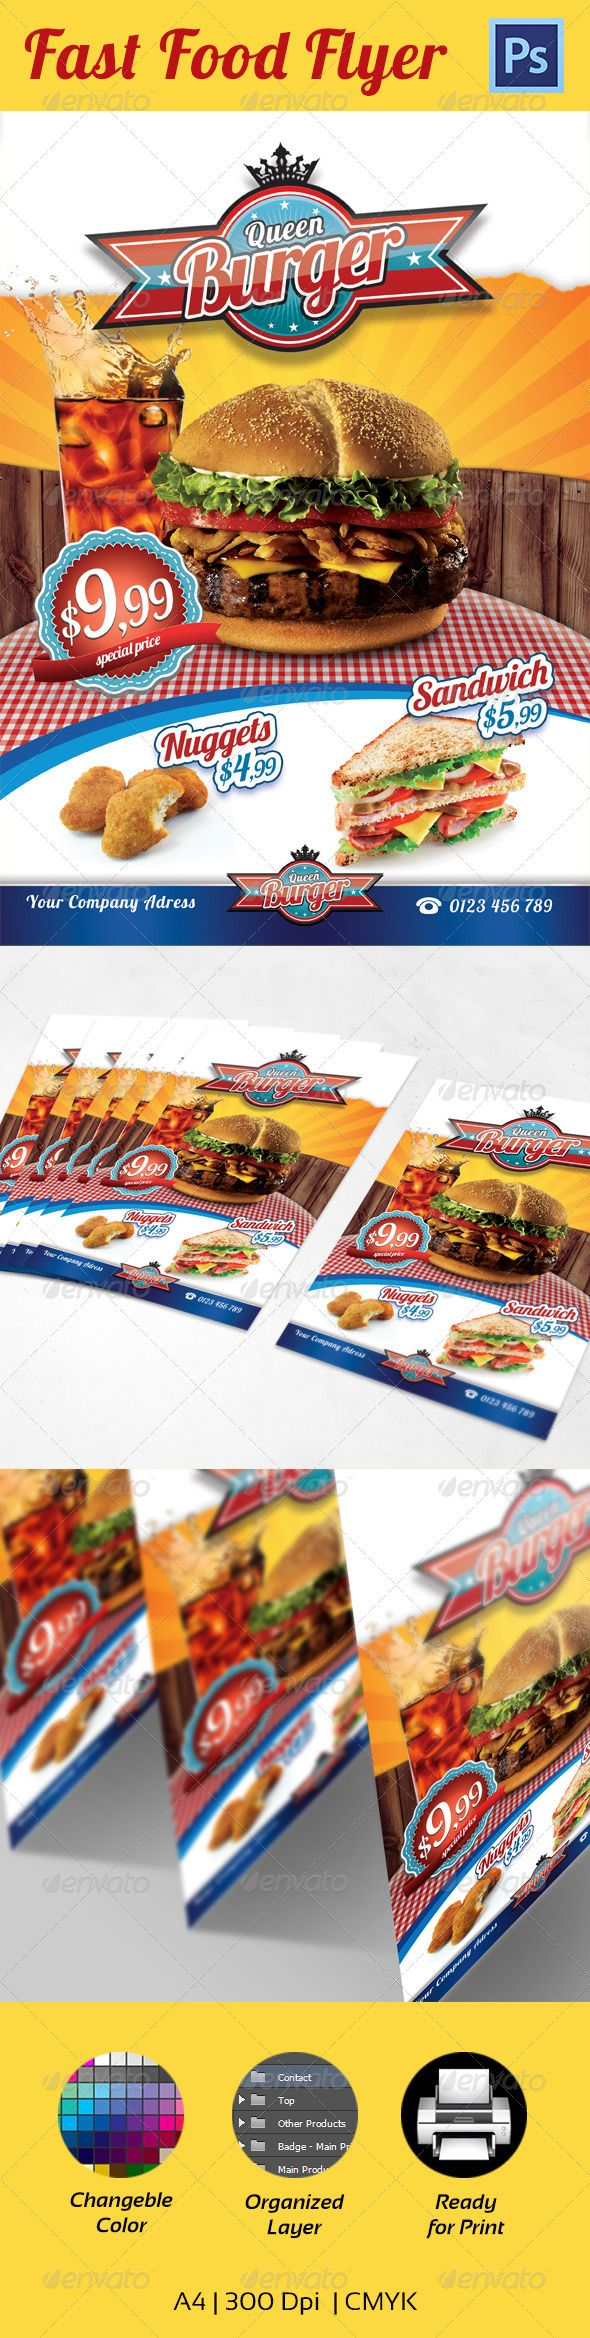 Fast Food Flyer Template - A4